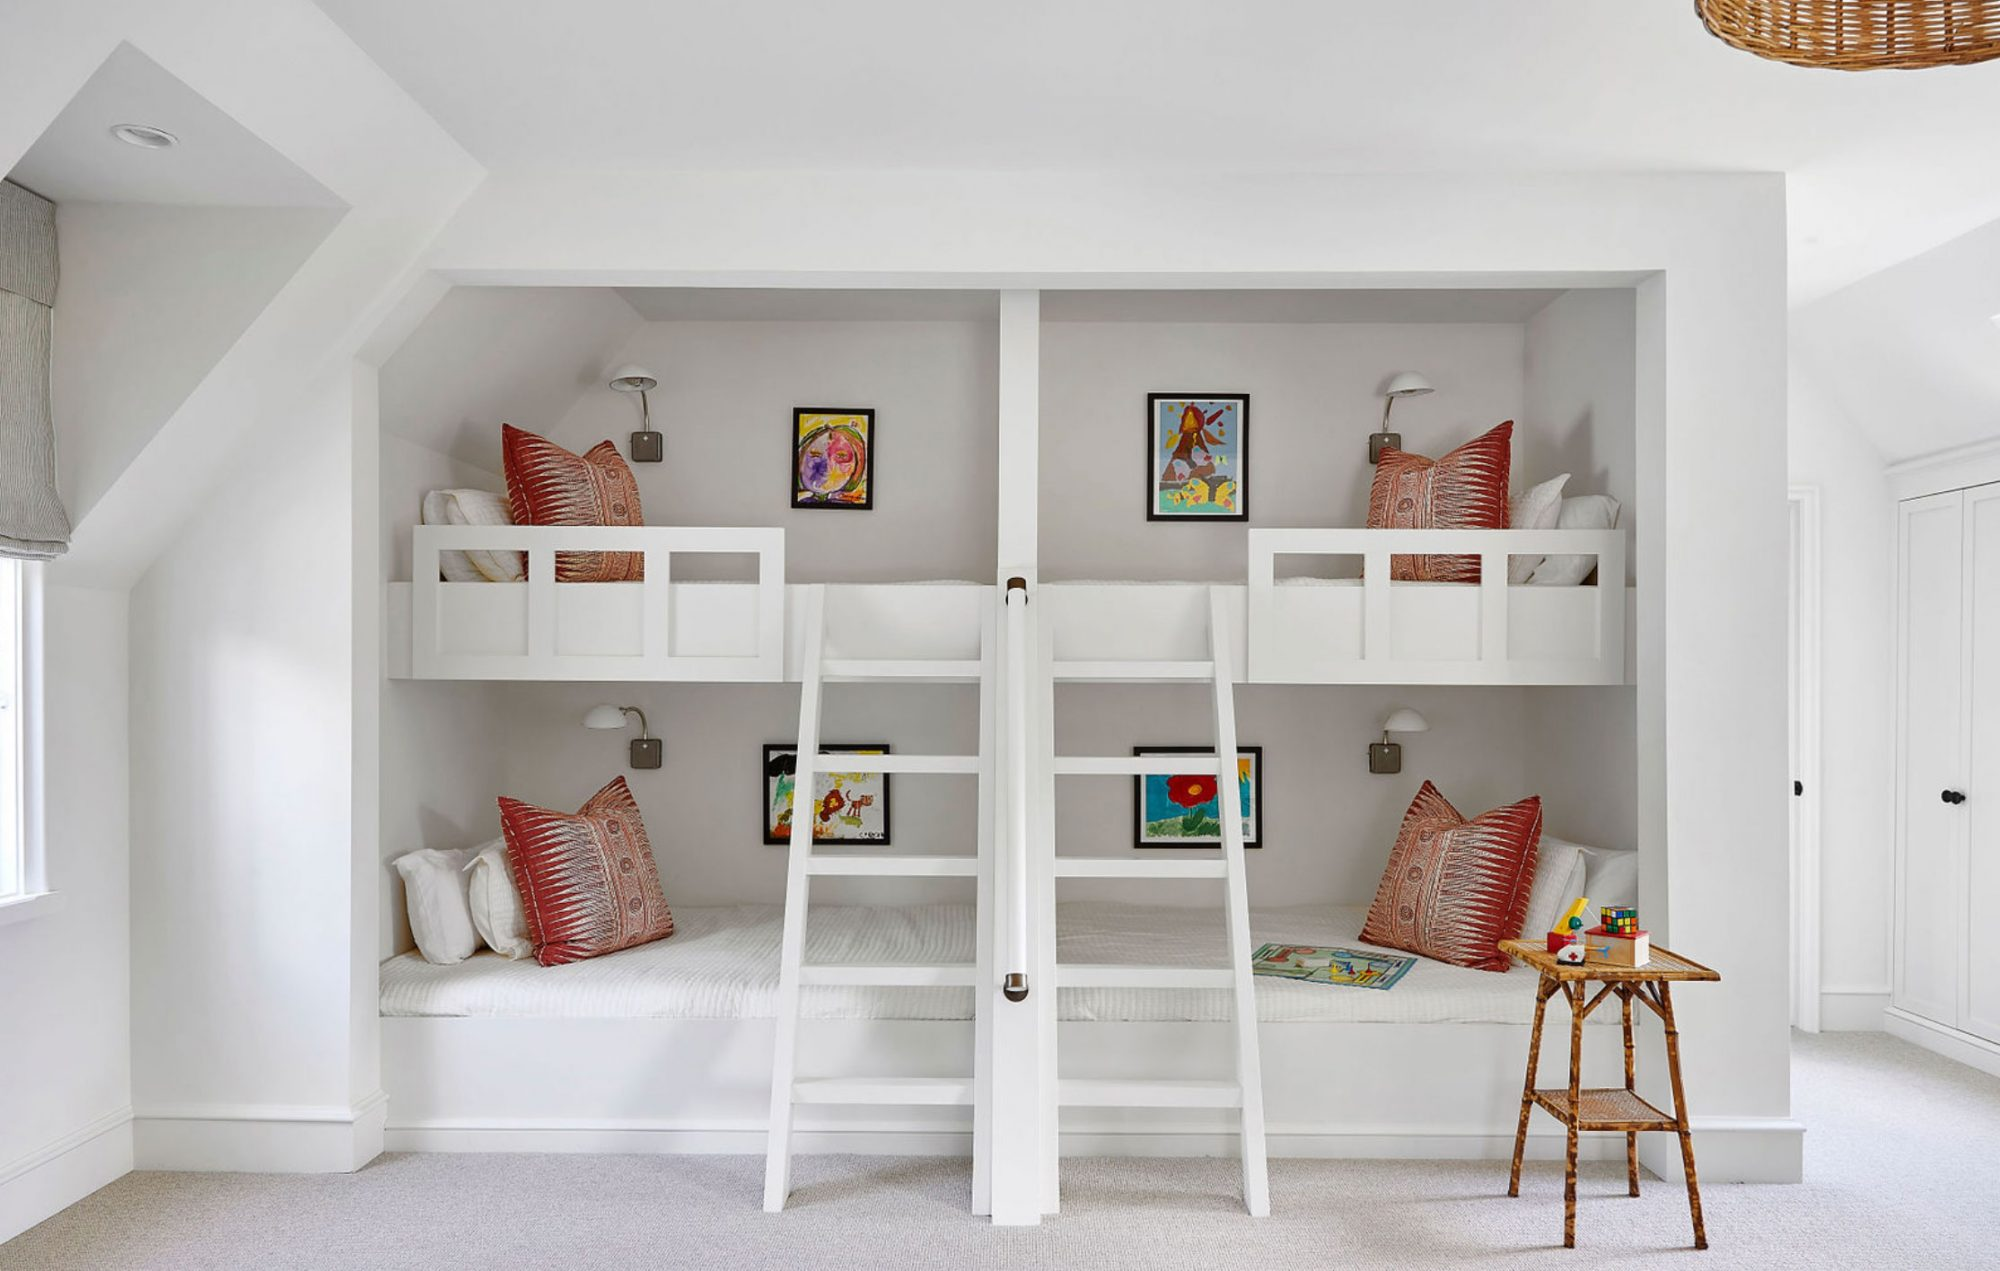 Four Bunkbeds with Ladders in Bunk Room